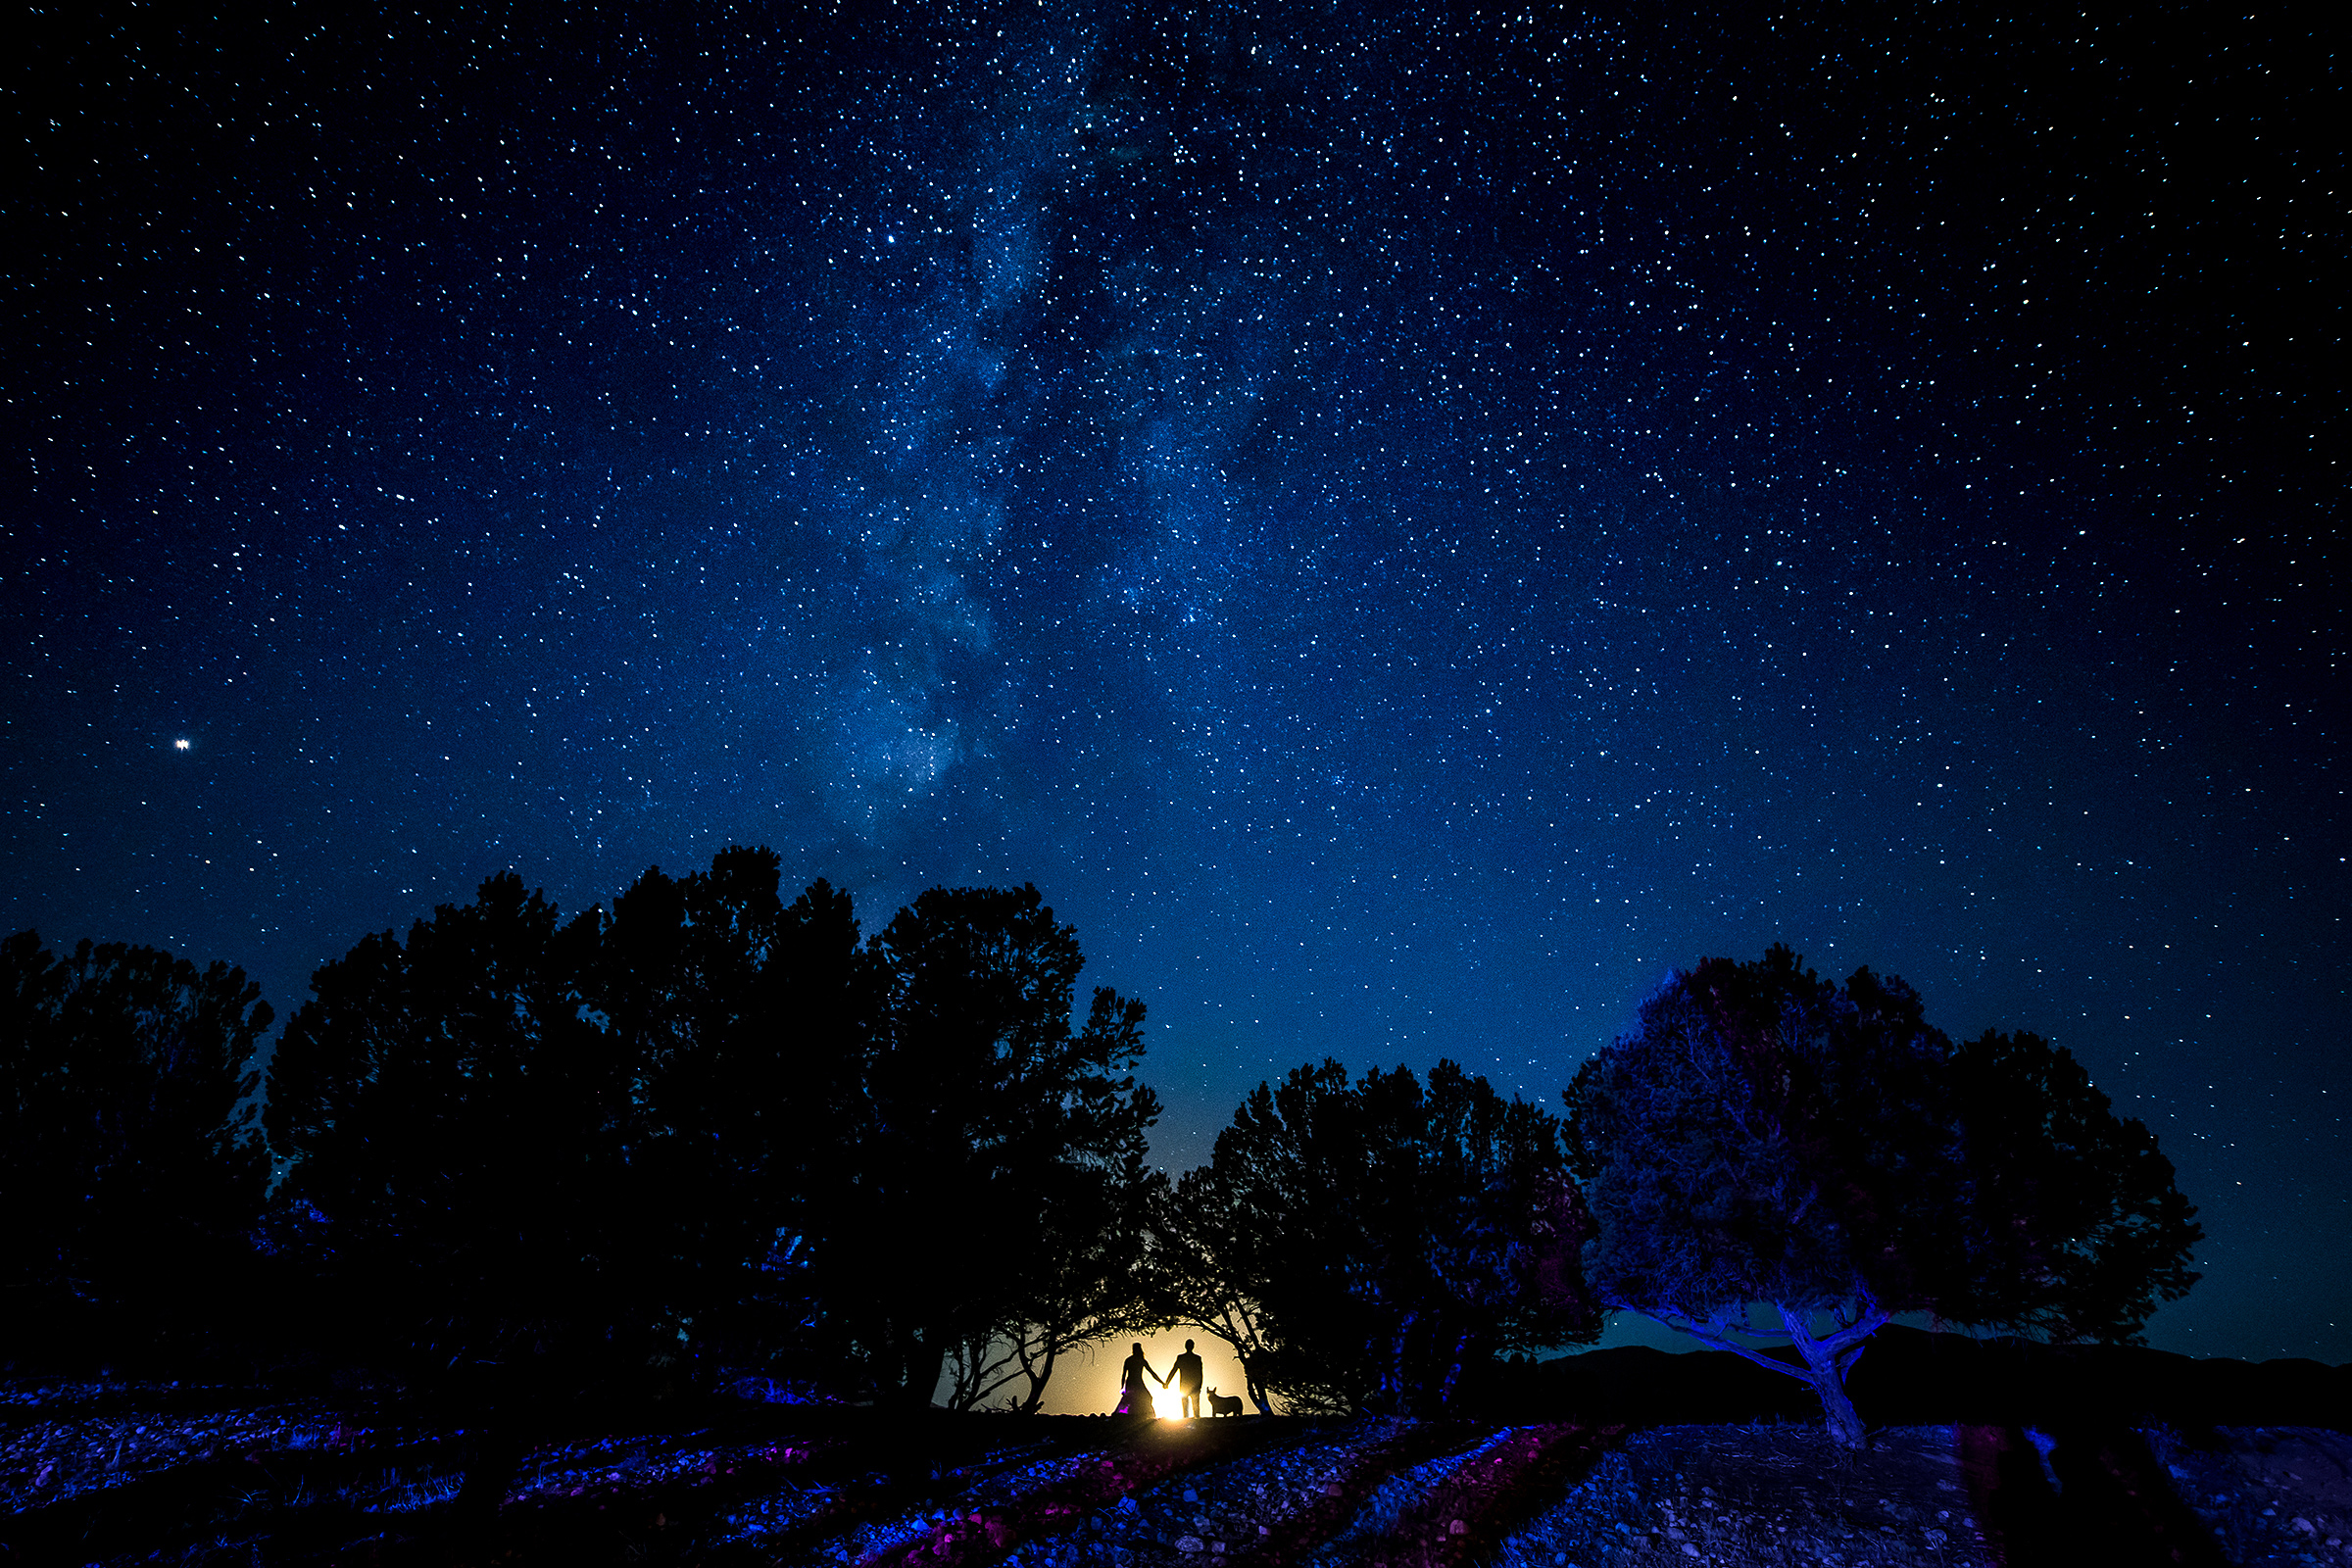 silhouette-of-bride-and-groom-against-night-sky-photo-by-j-la-plante-photo